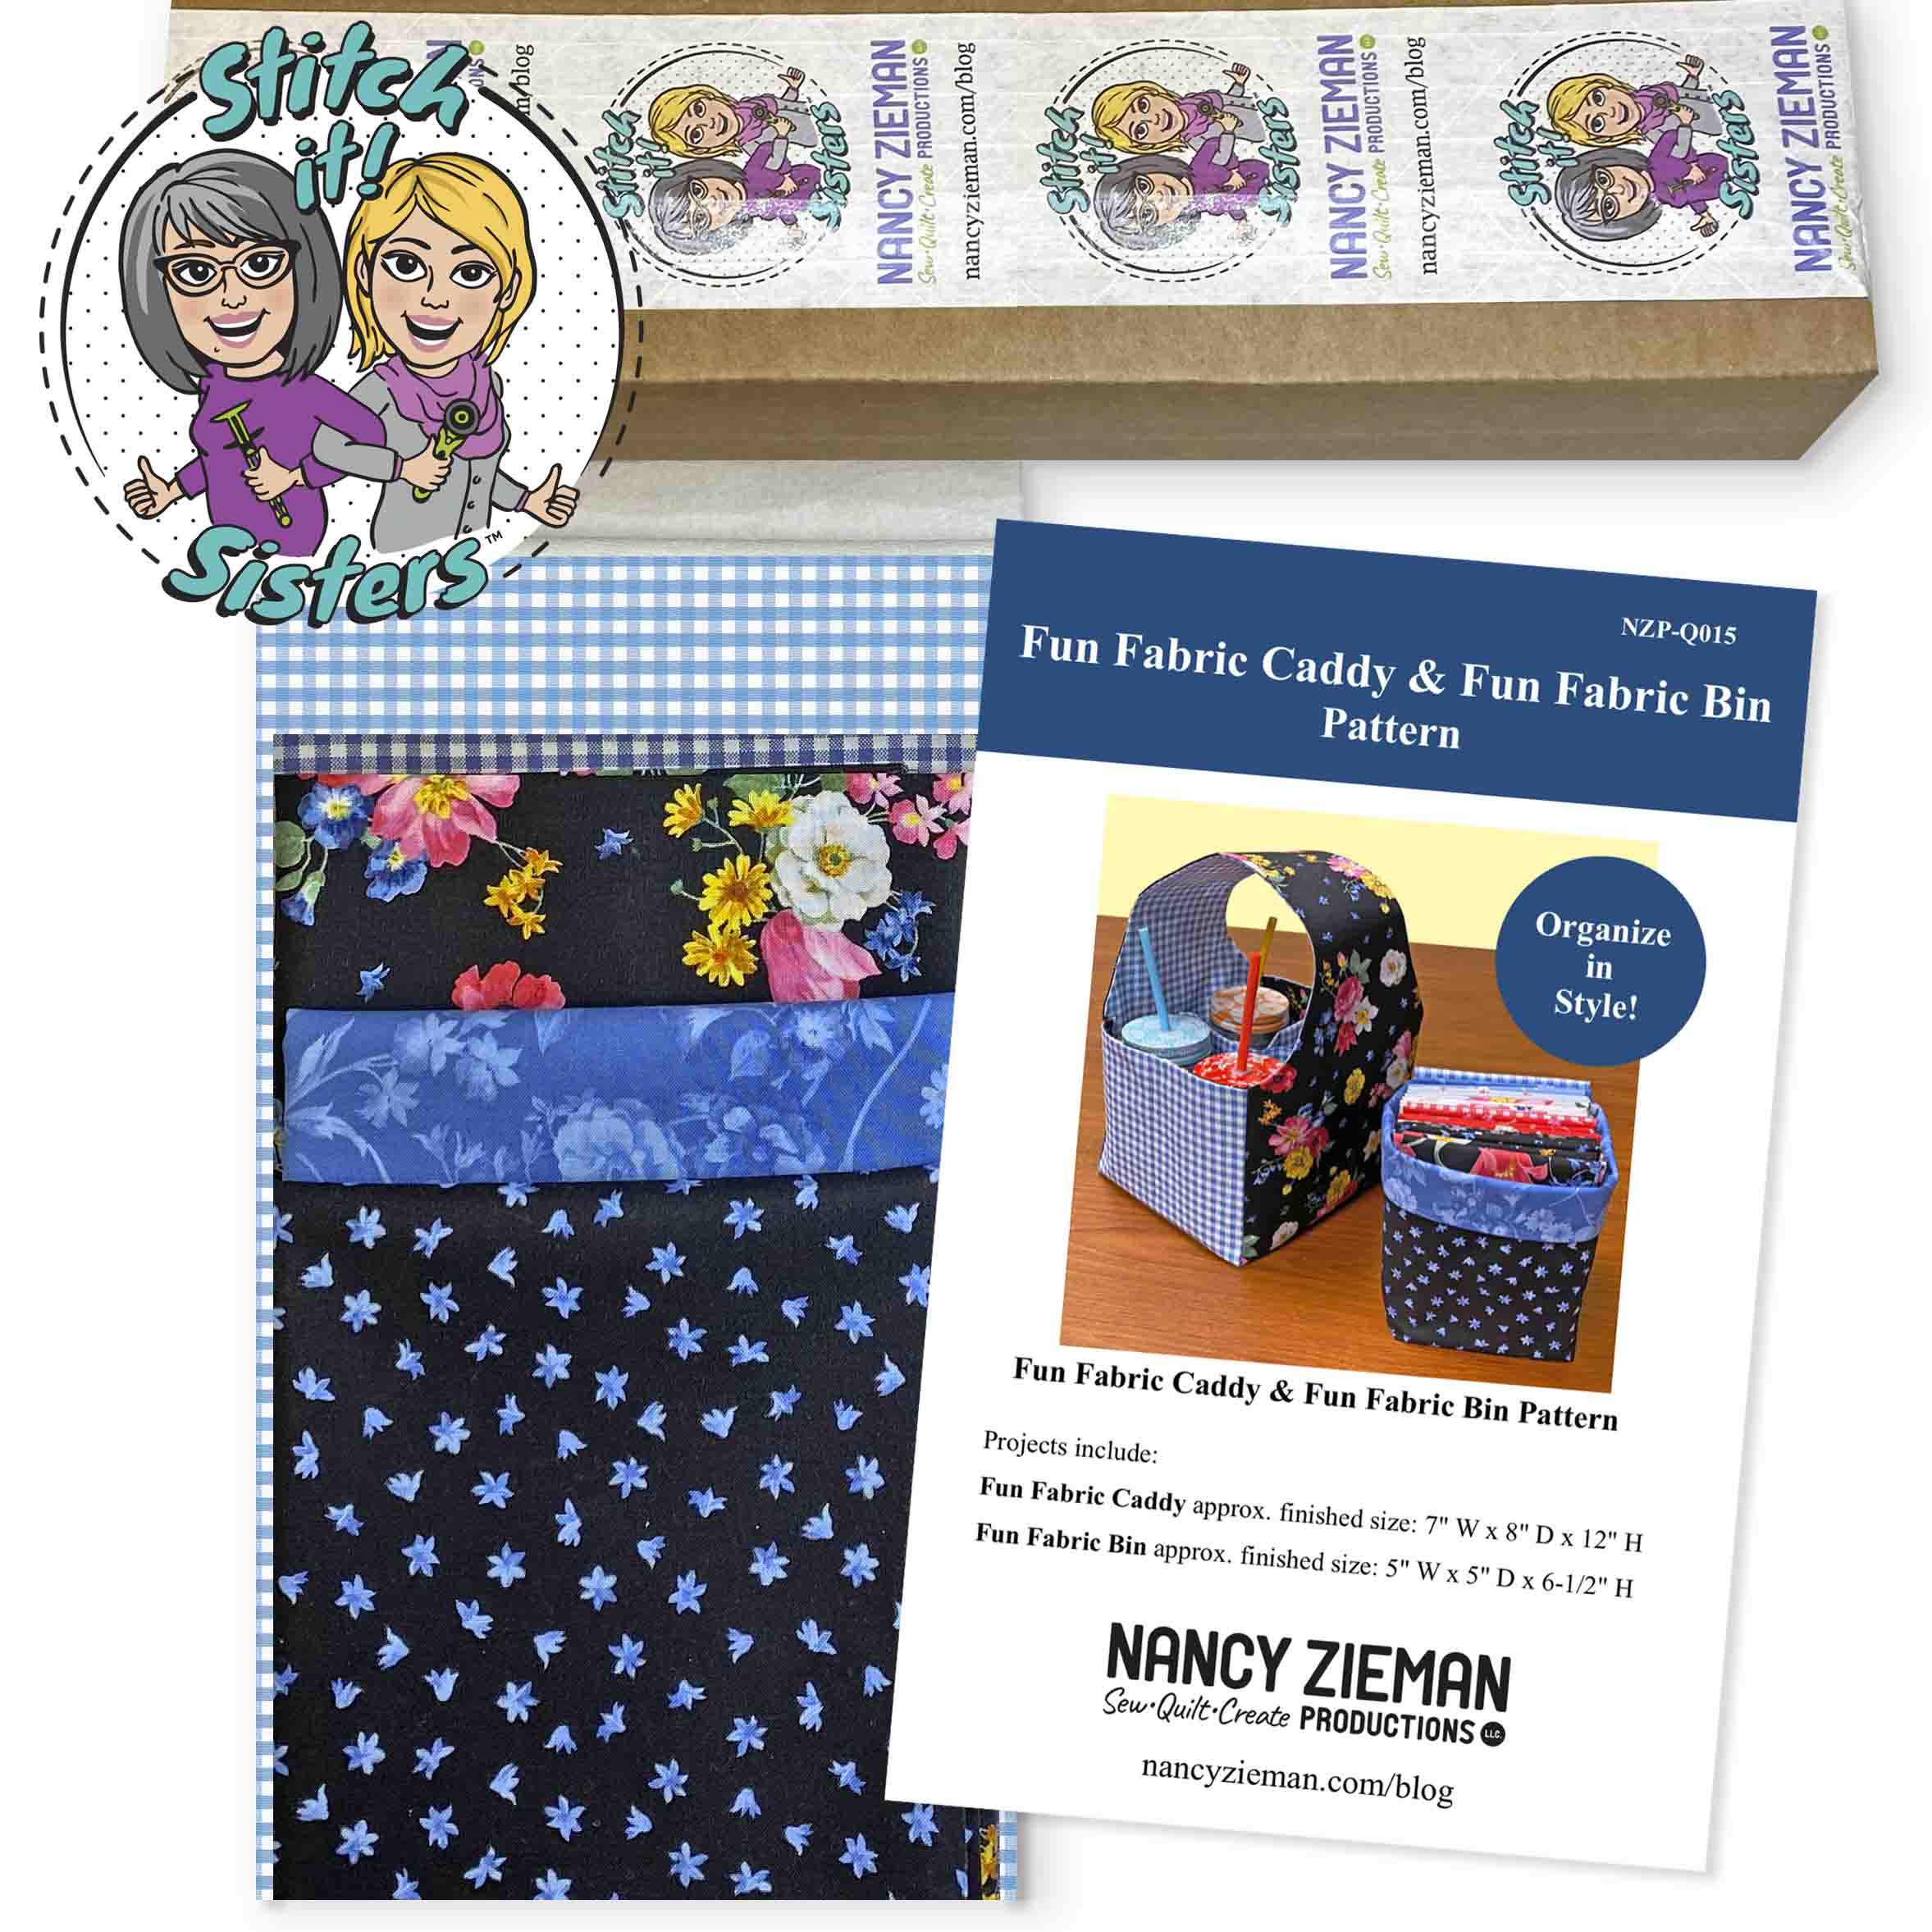 NEW! Fun Fabric Caddy & Fun Fabric Bin Bundle Box by the Stitch it! Sisters available at shopnzp.com